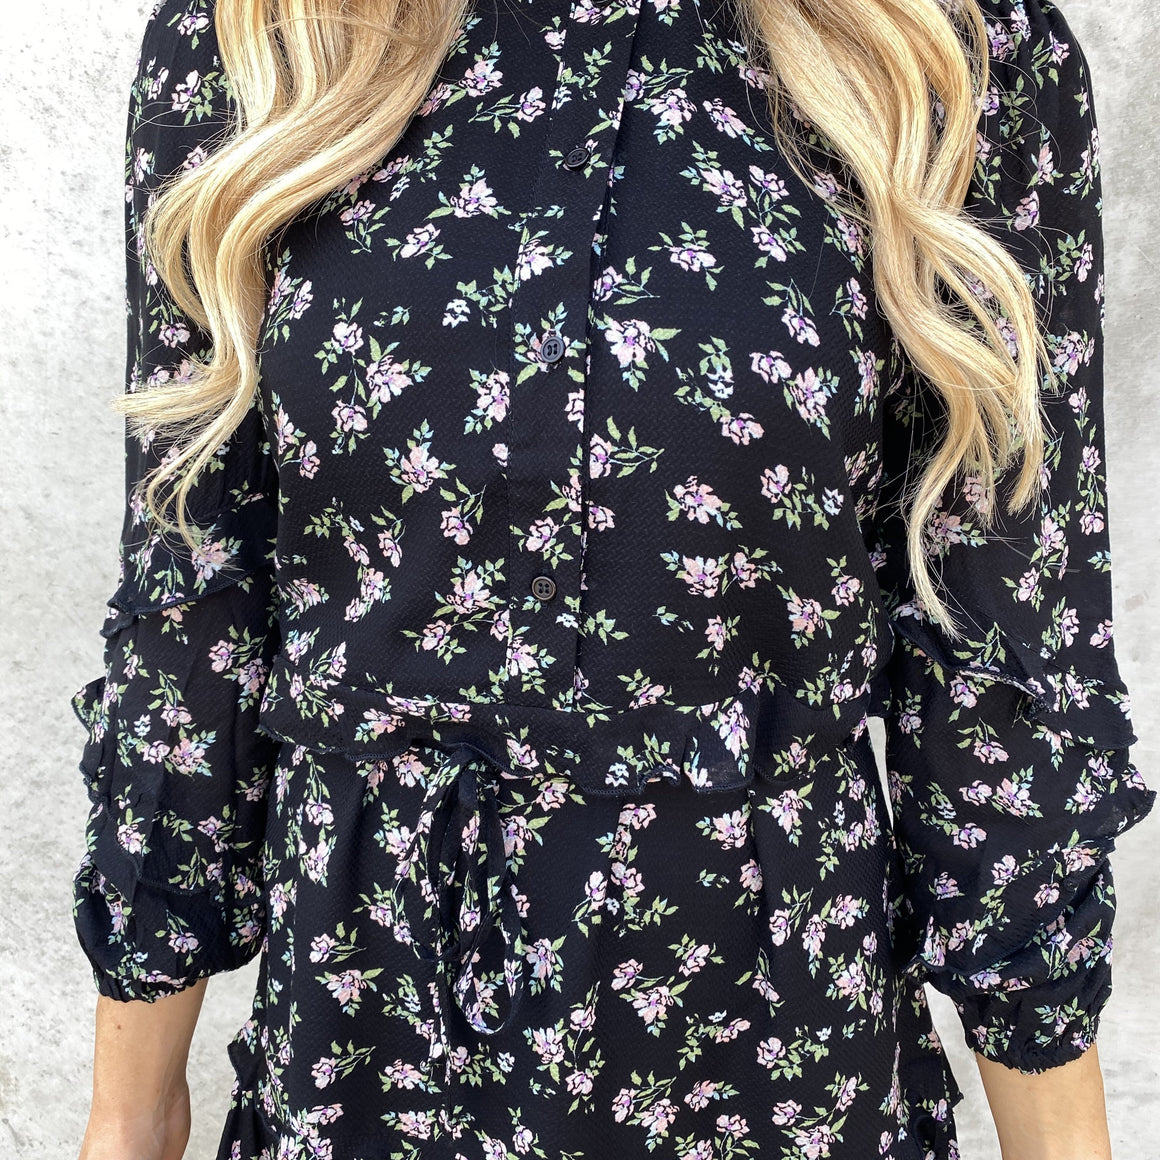 Ready to Bloom Floral Dress in Black - Dainty Hooligan